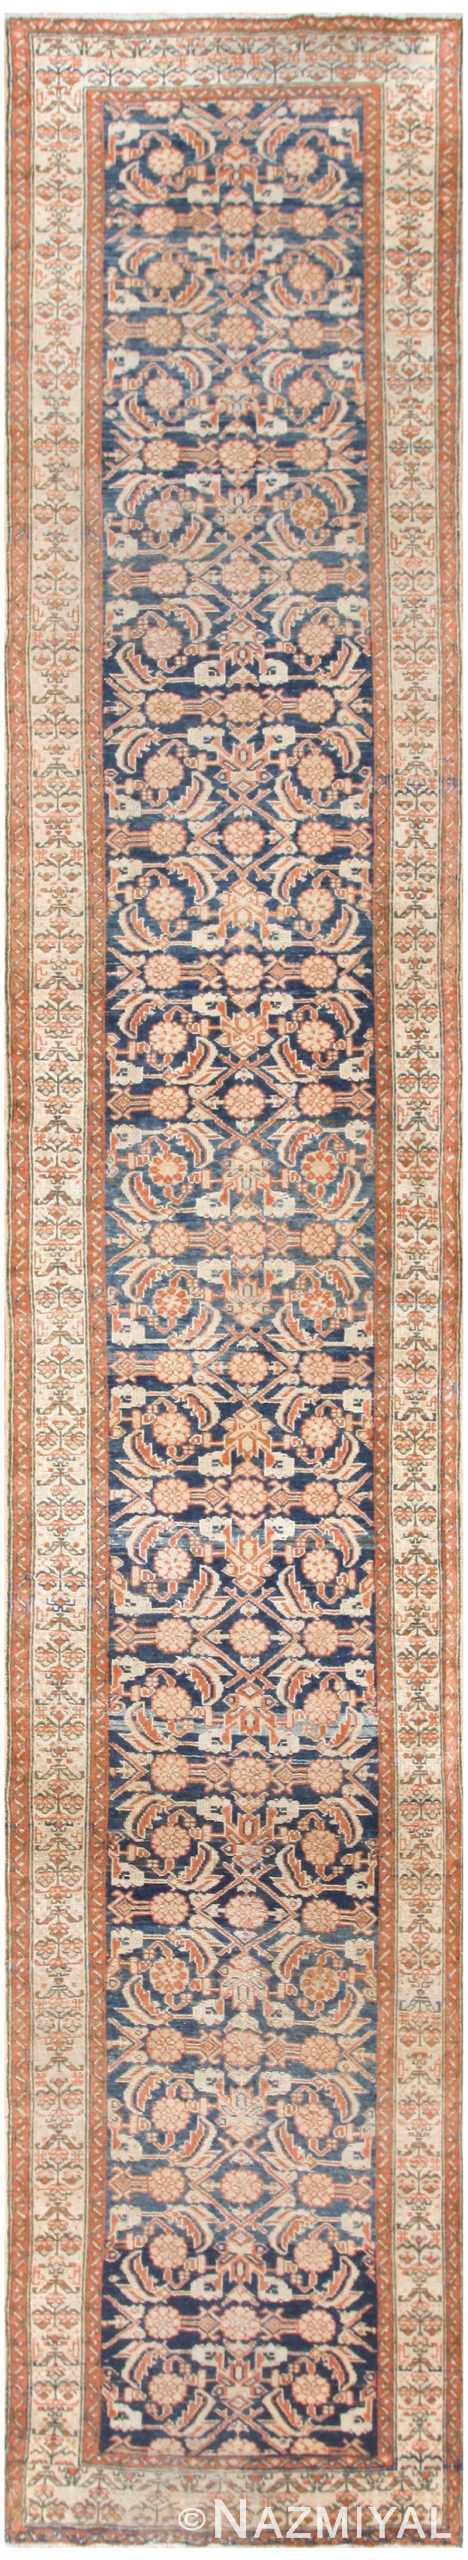 Antique Persian Malayer Runner 50174 Nazmiyal